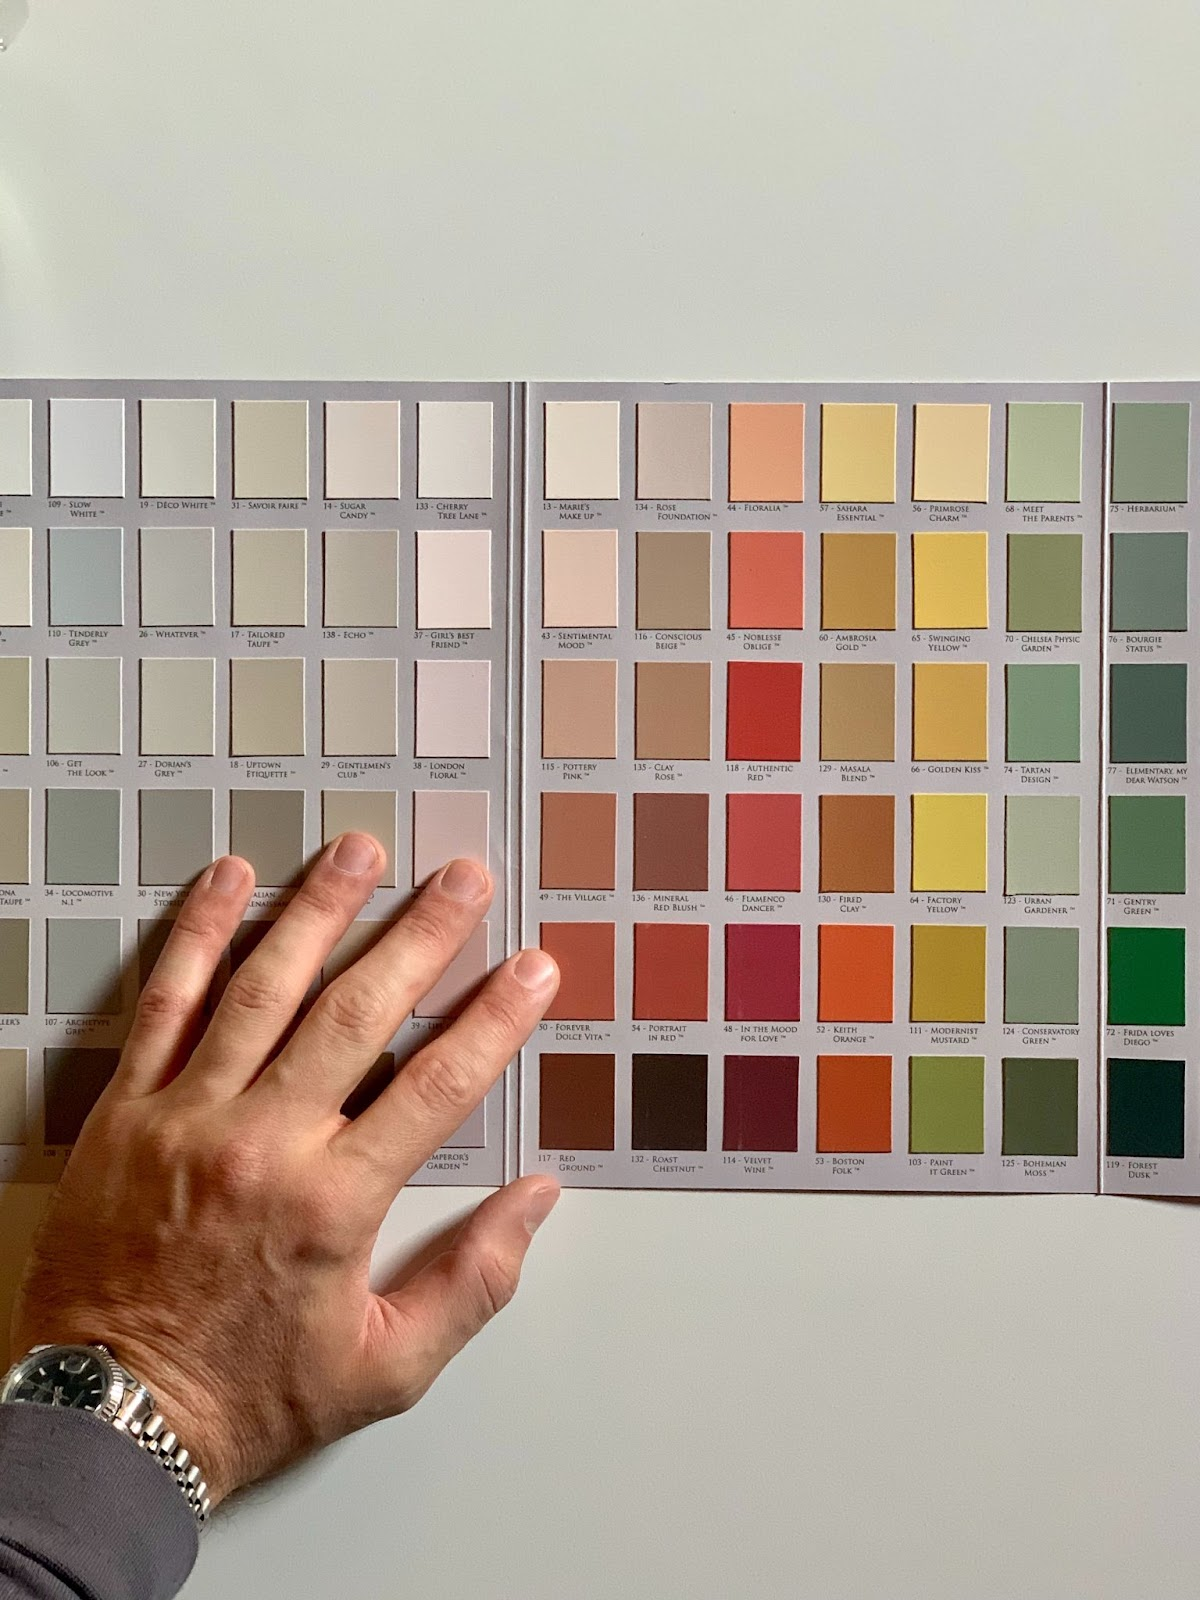 Color pallet held against wall